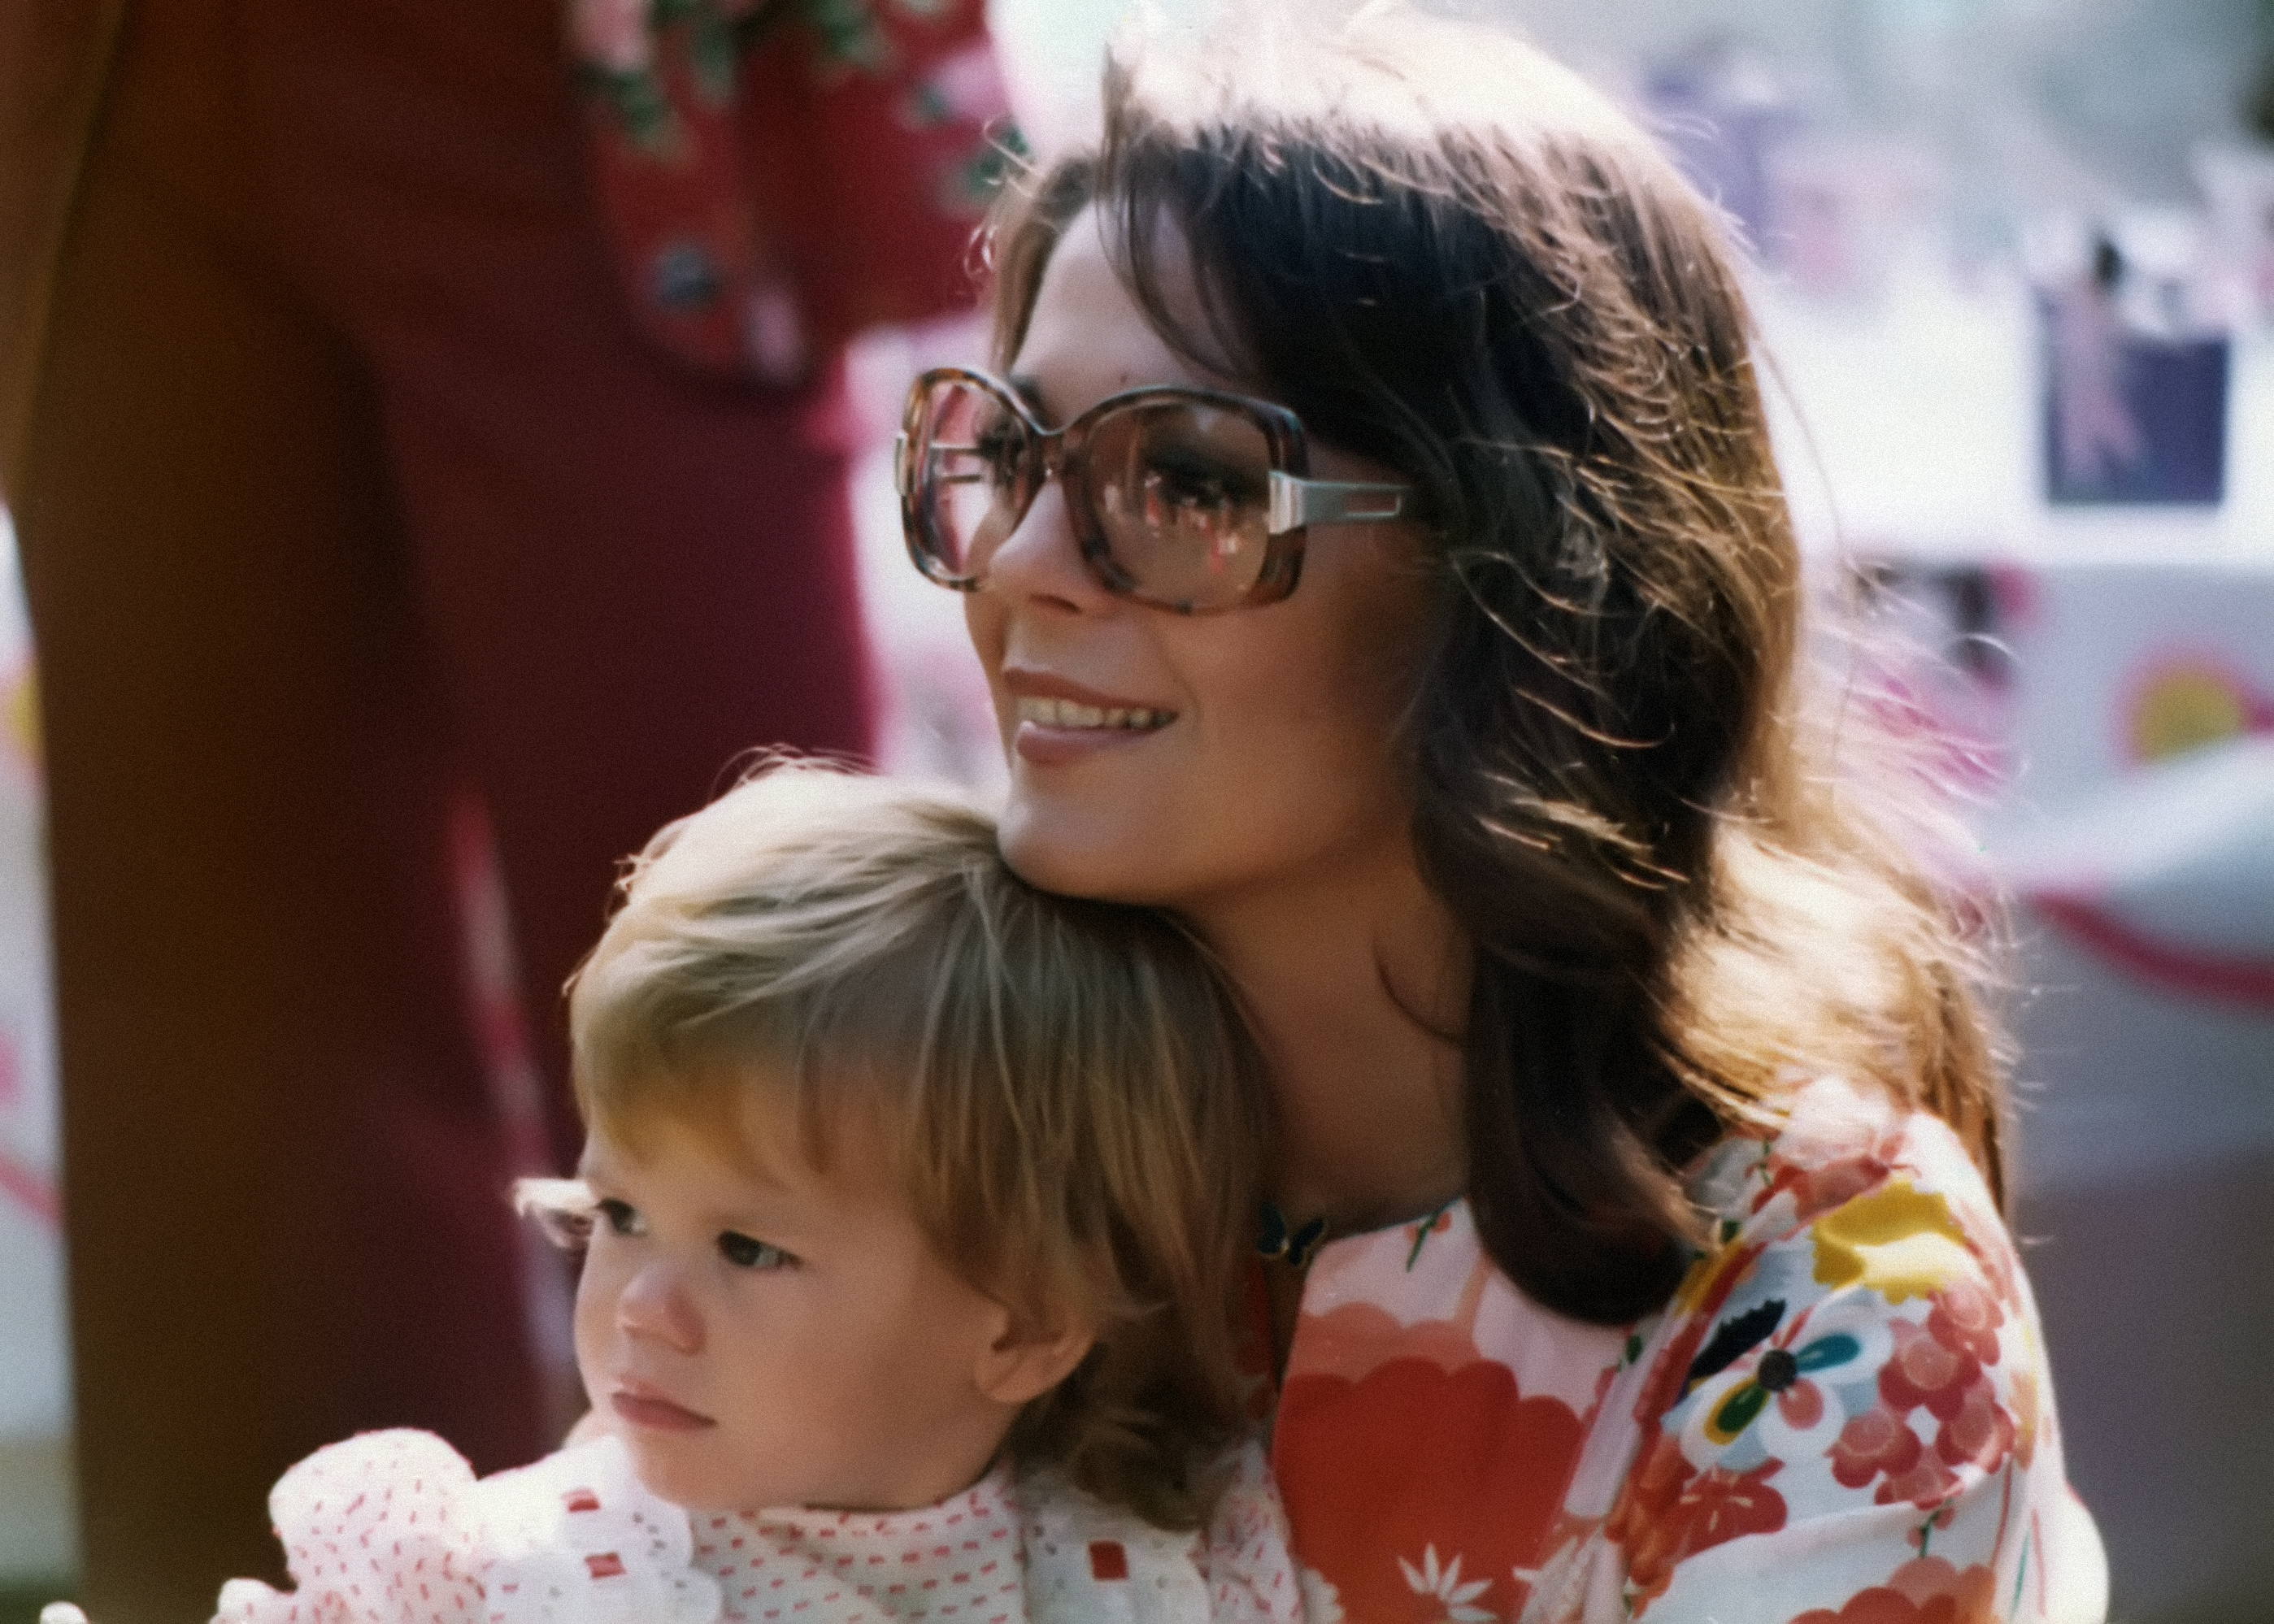 Wood and her daughter Courtney Wagner at her other daughter Natasha's birthday party in 1975